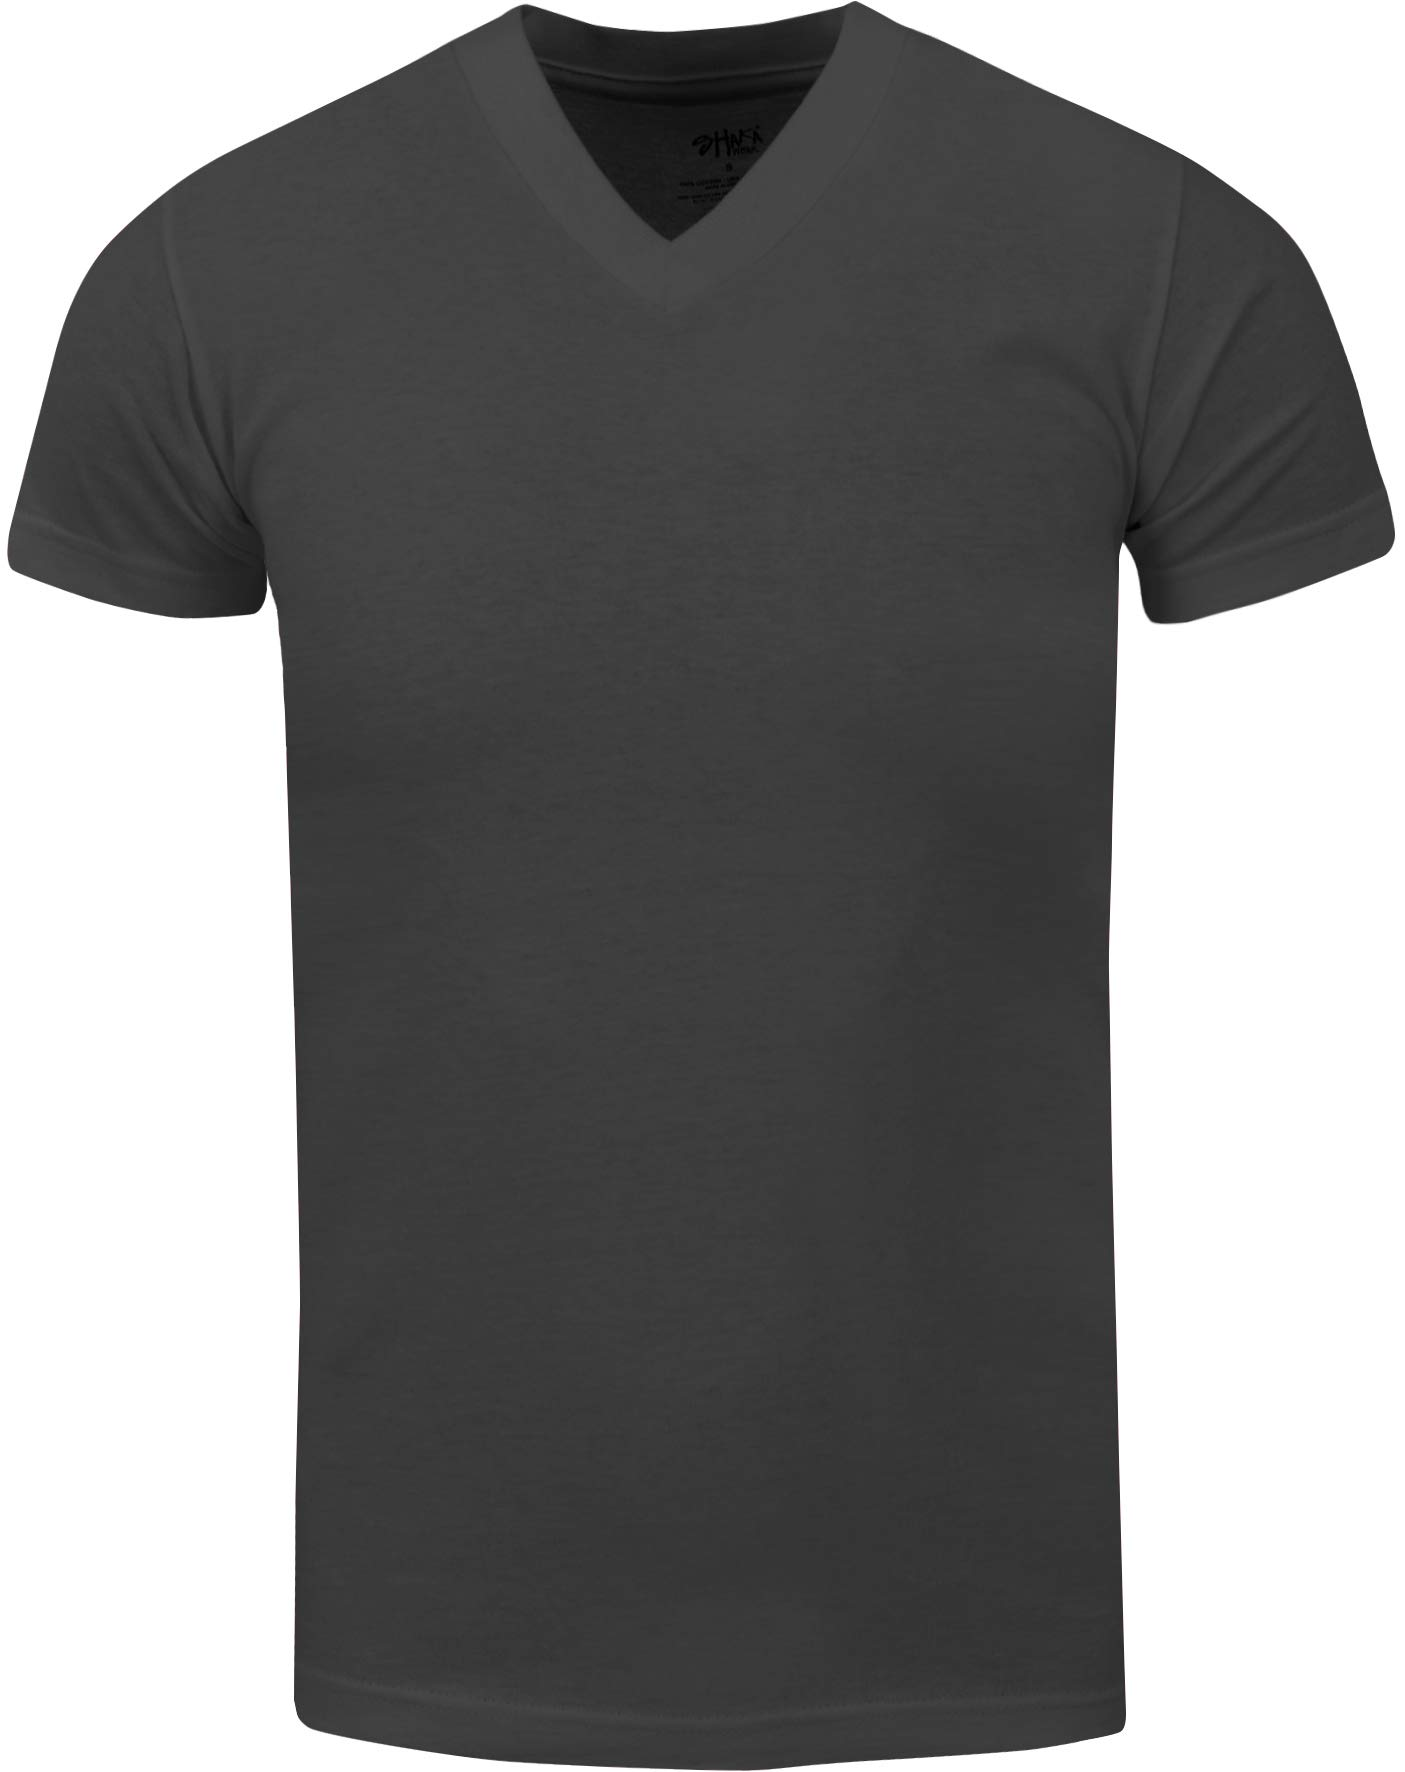 VNS22_ Active Mens Premium Cotton Heavy Weight V Neck Basic T Shirt D.Grey